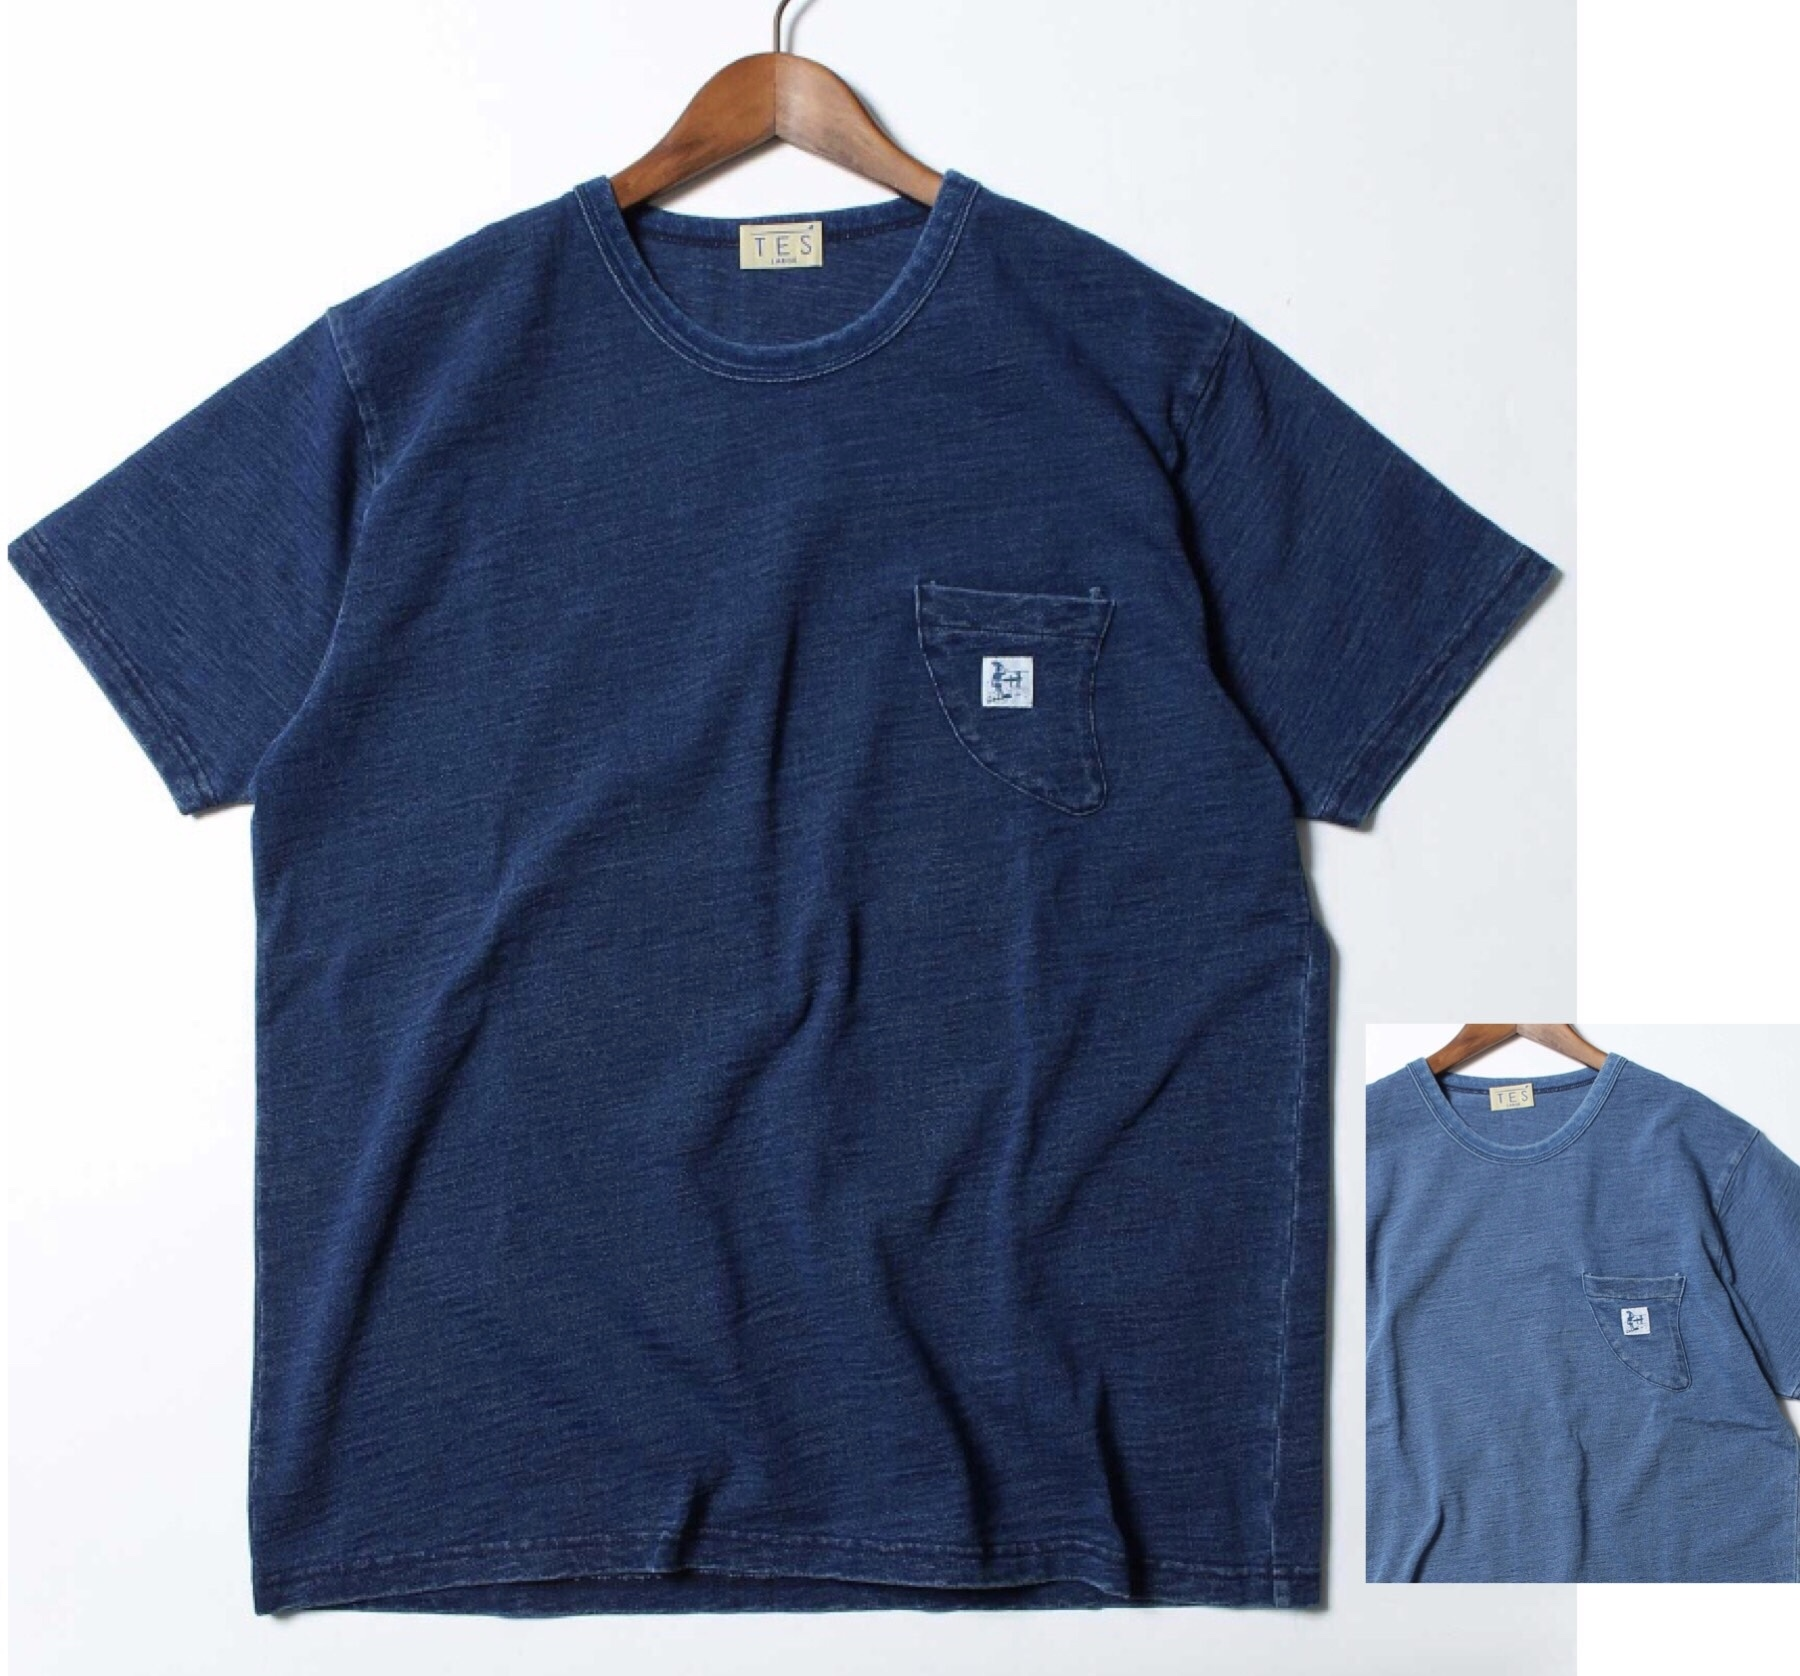 TES INDIGO-HEVY WEIGHT T